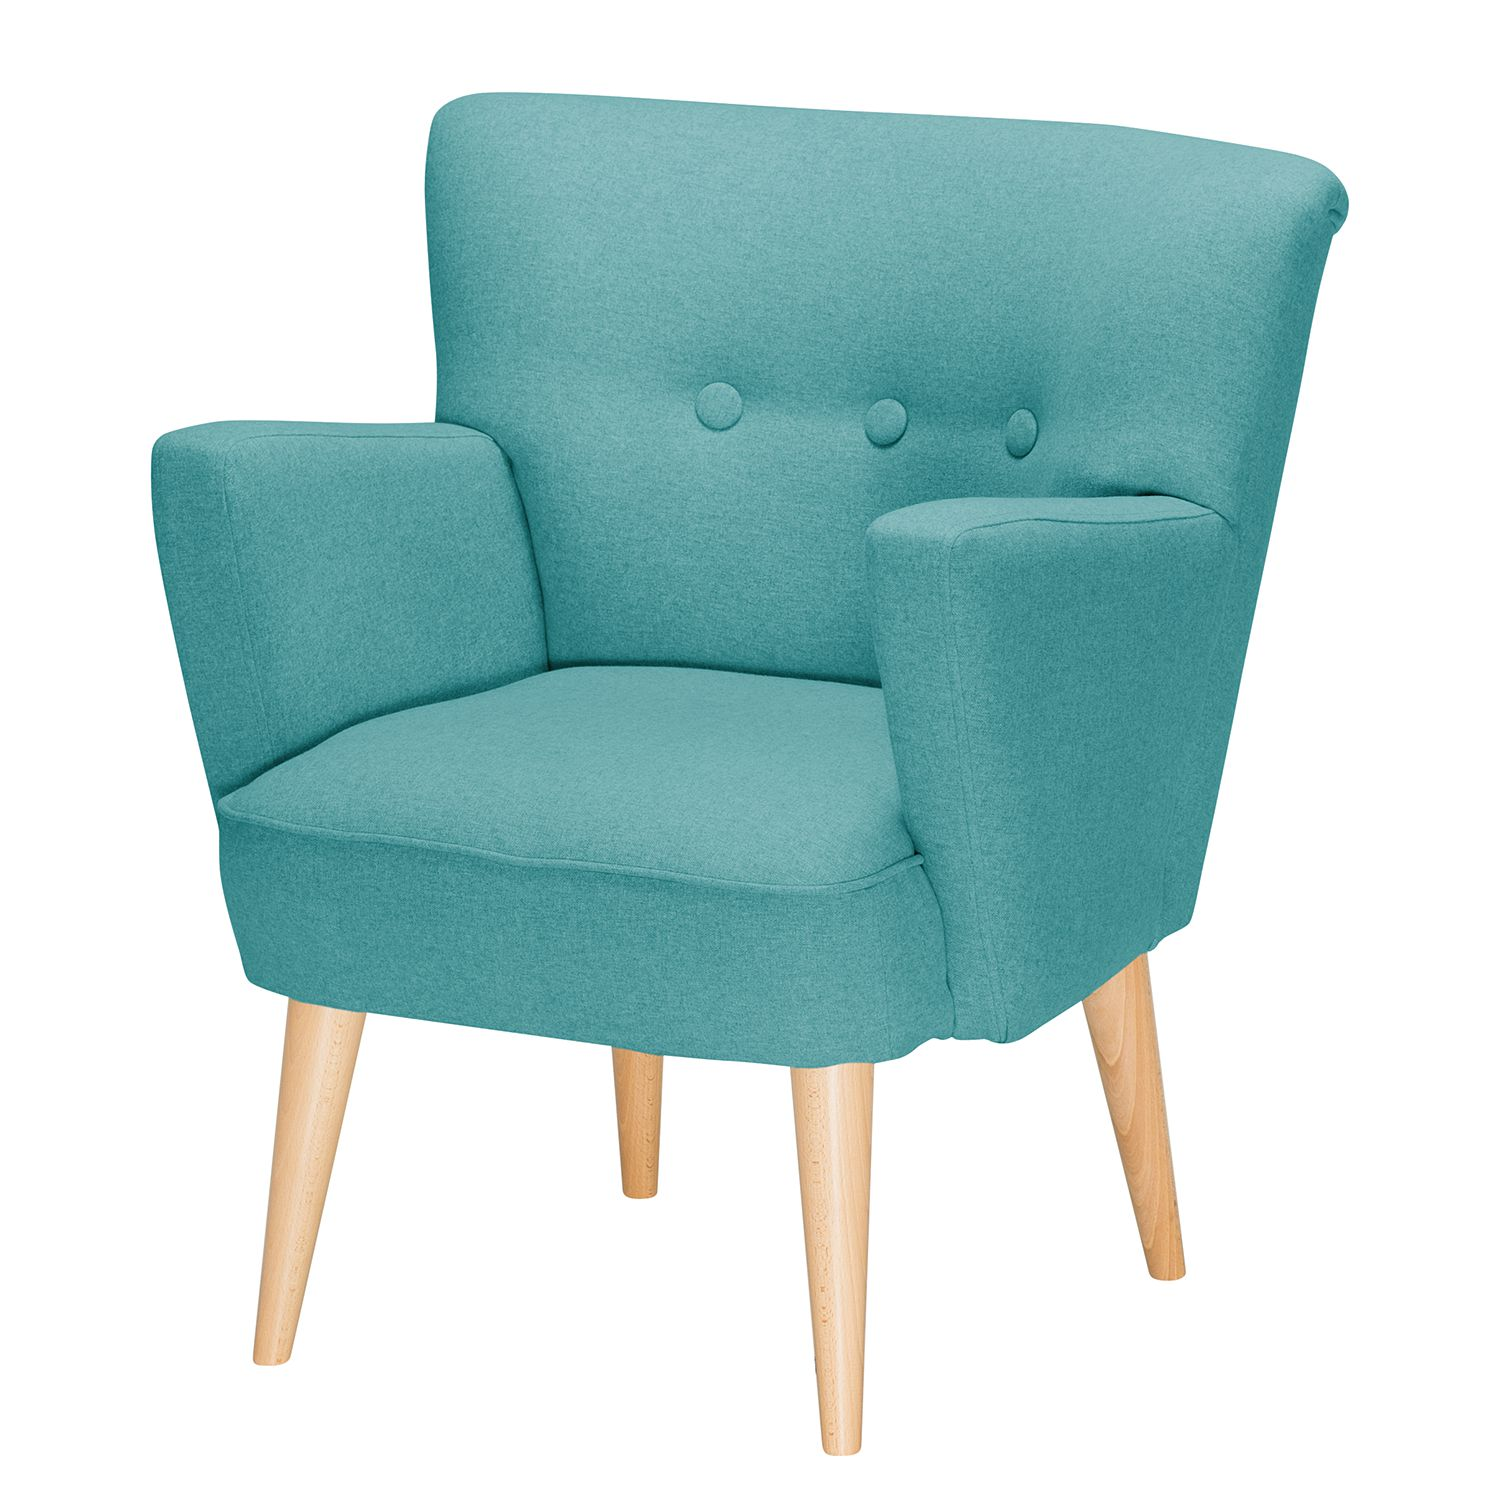 Fauteuil Bauro II - Feutre - Turquoise, Morteens